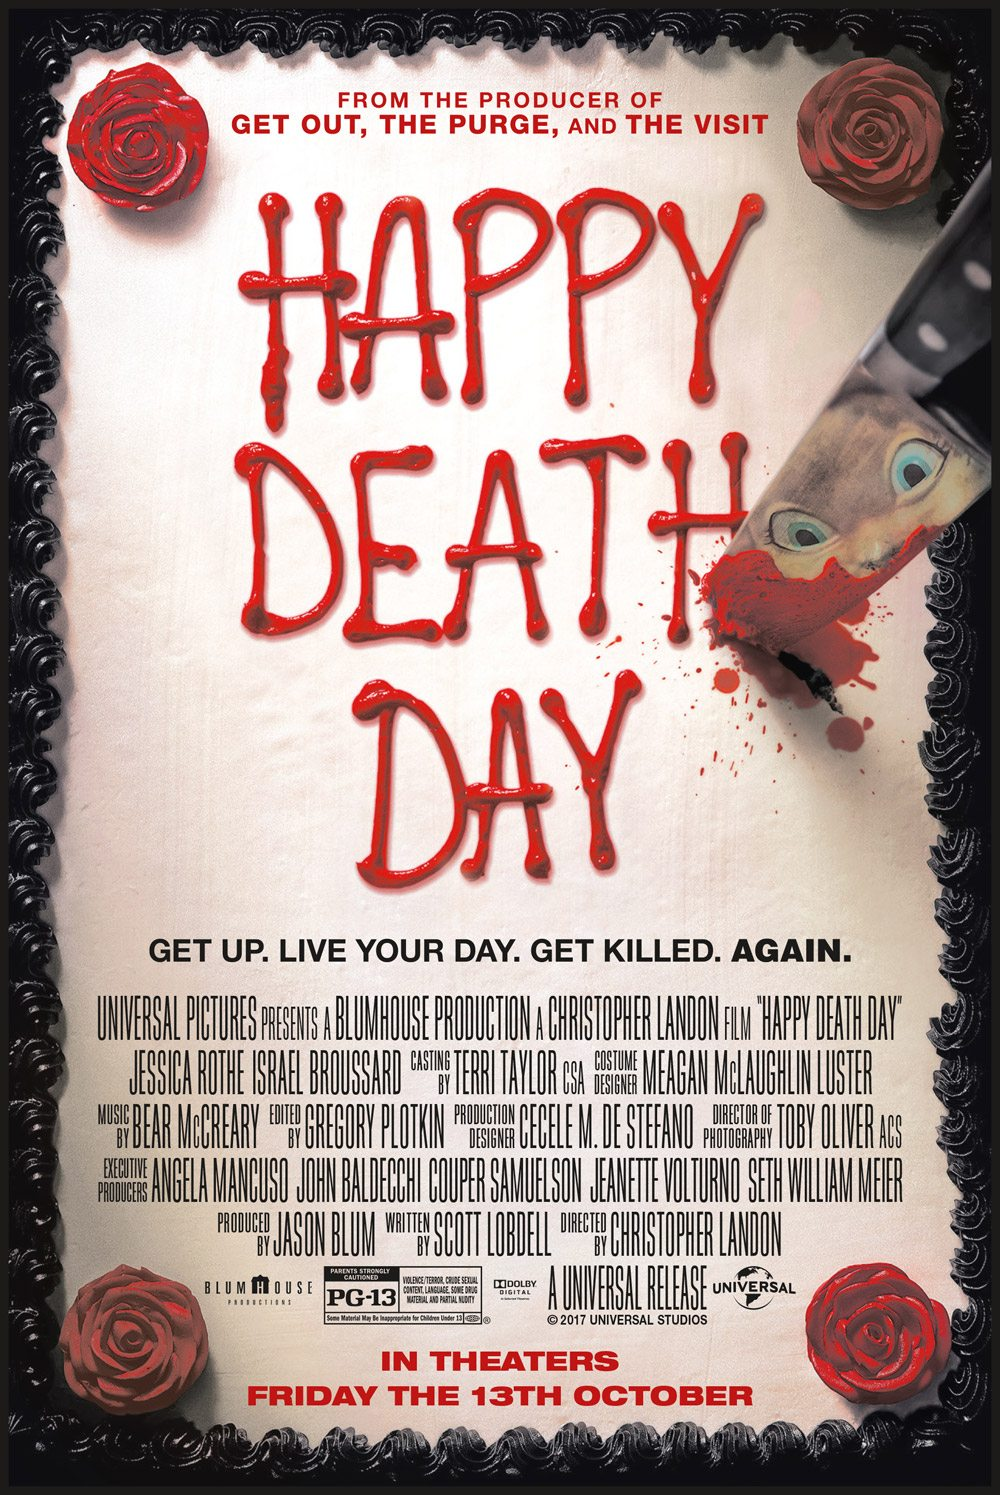 8. Happy Death Day (2017) - Described as Groundhog's Day meets Scream, this twist on the slasher genre turns its slutty sorority sister into a bad ass final girl. Full of charm and smarts, this slasher brings a new slasher trope to get behind, #GroundhogHorror.